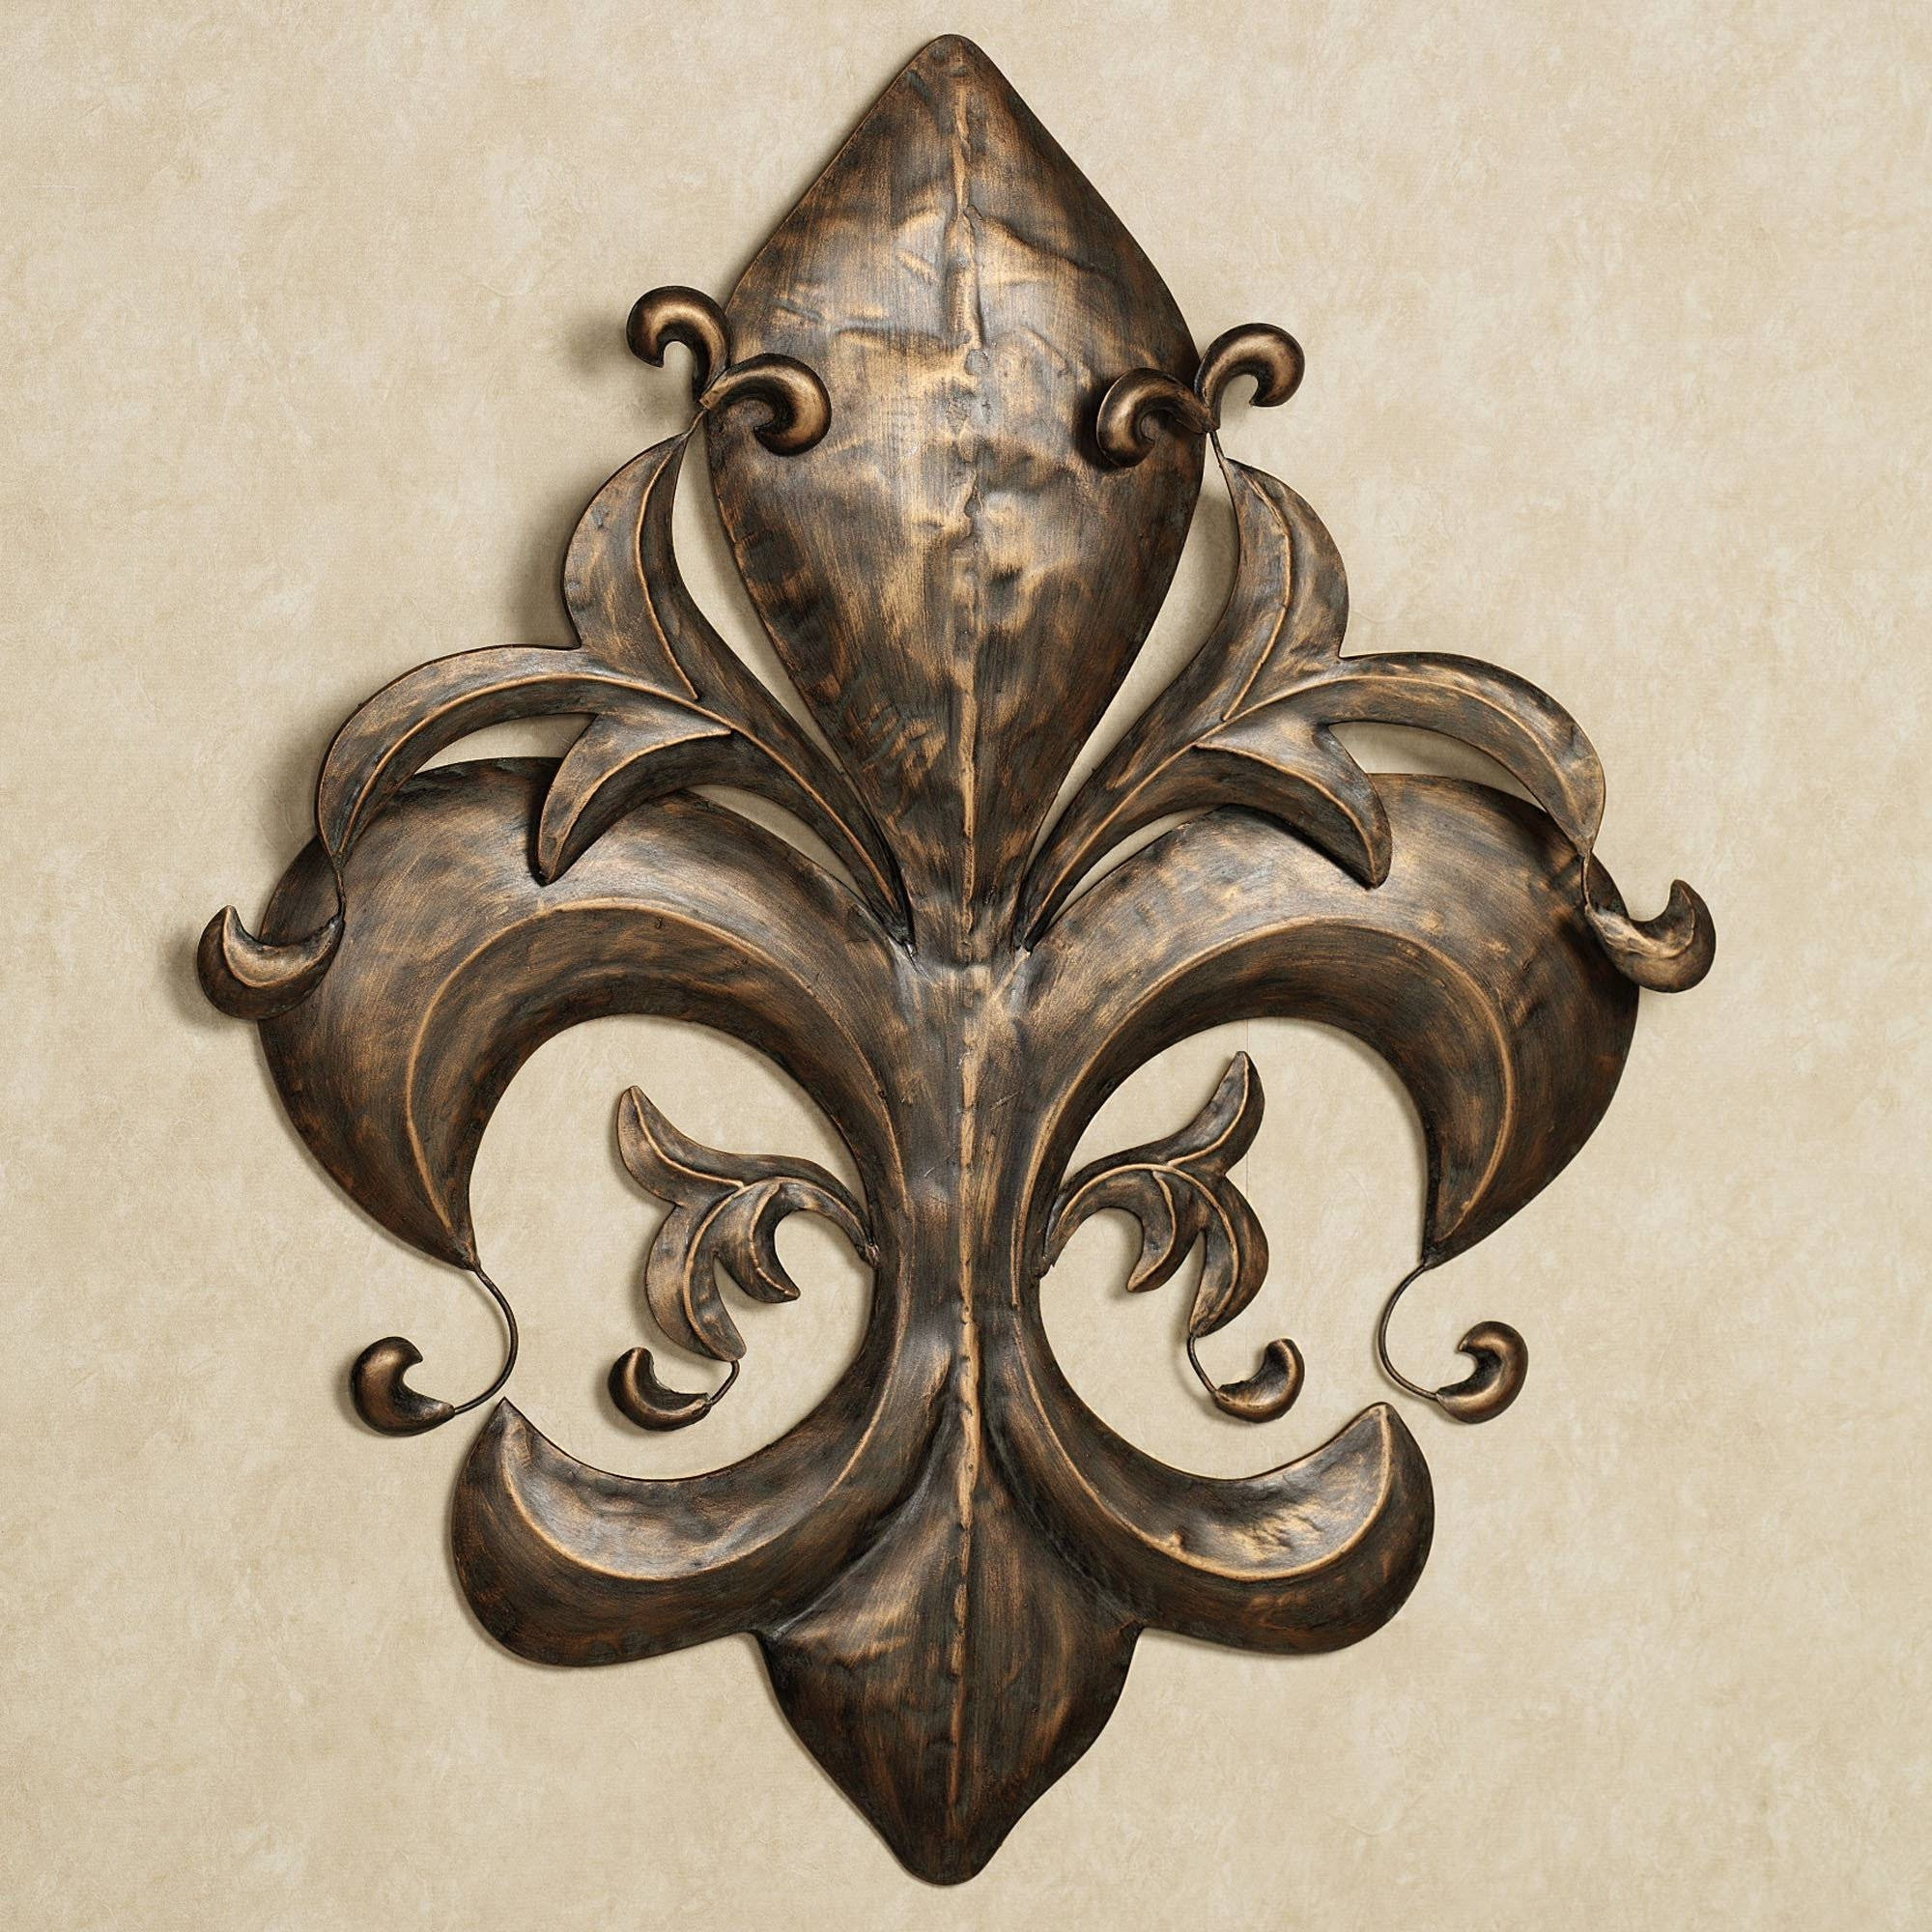 Fleur De Lis Metal Wall Decor | Design Ideas And Decor Intended For Most Up To Date Fleur De Lis Metal Wall Art (View 11 of 25)